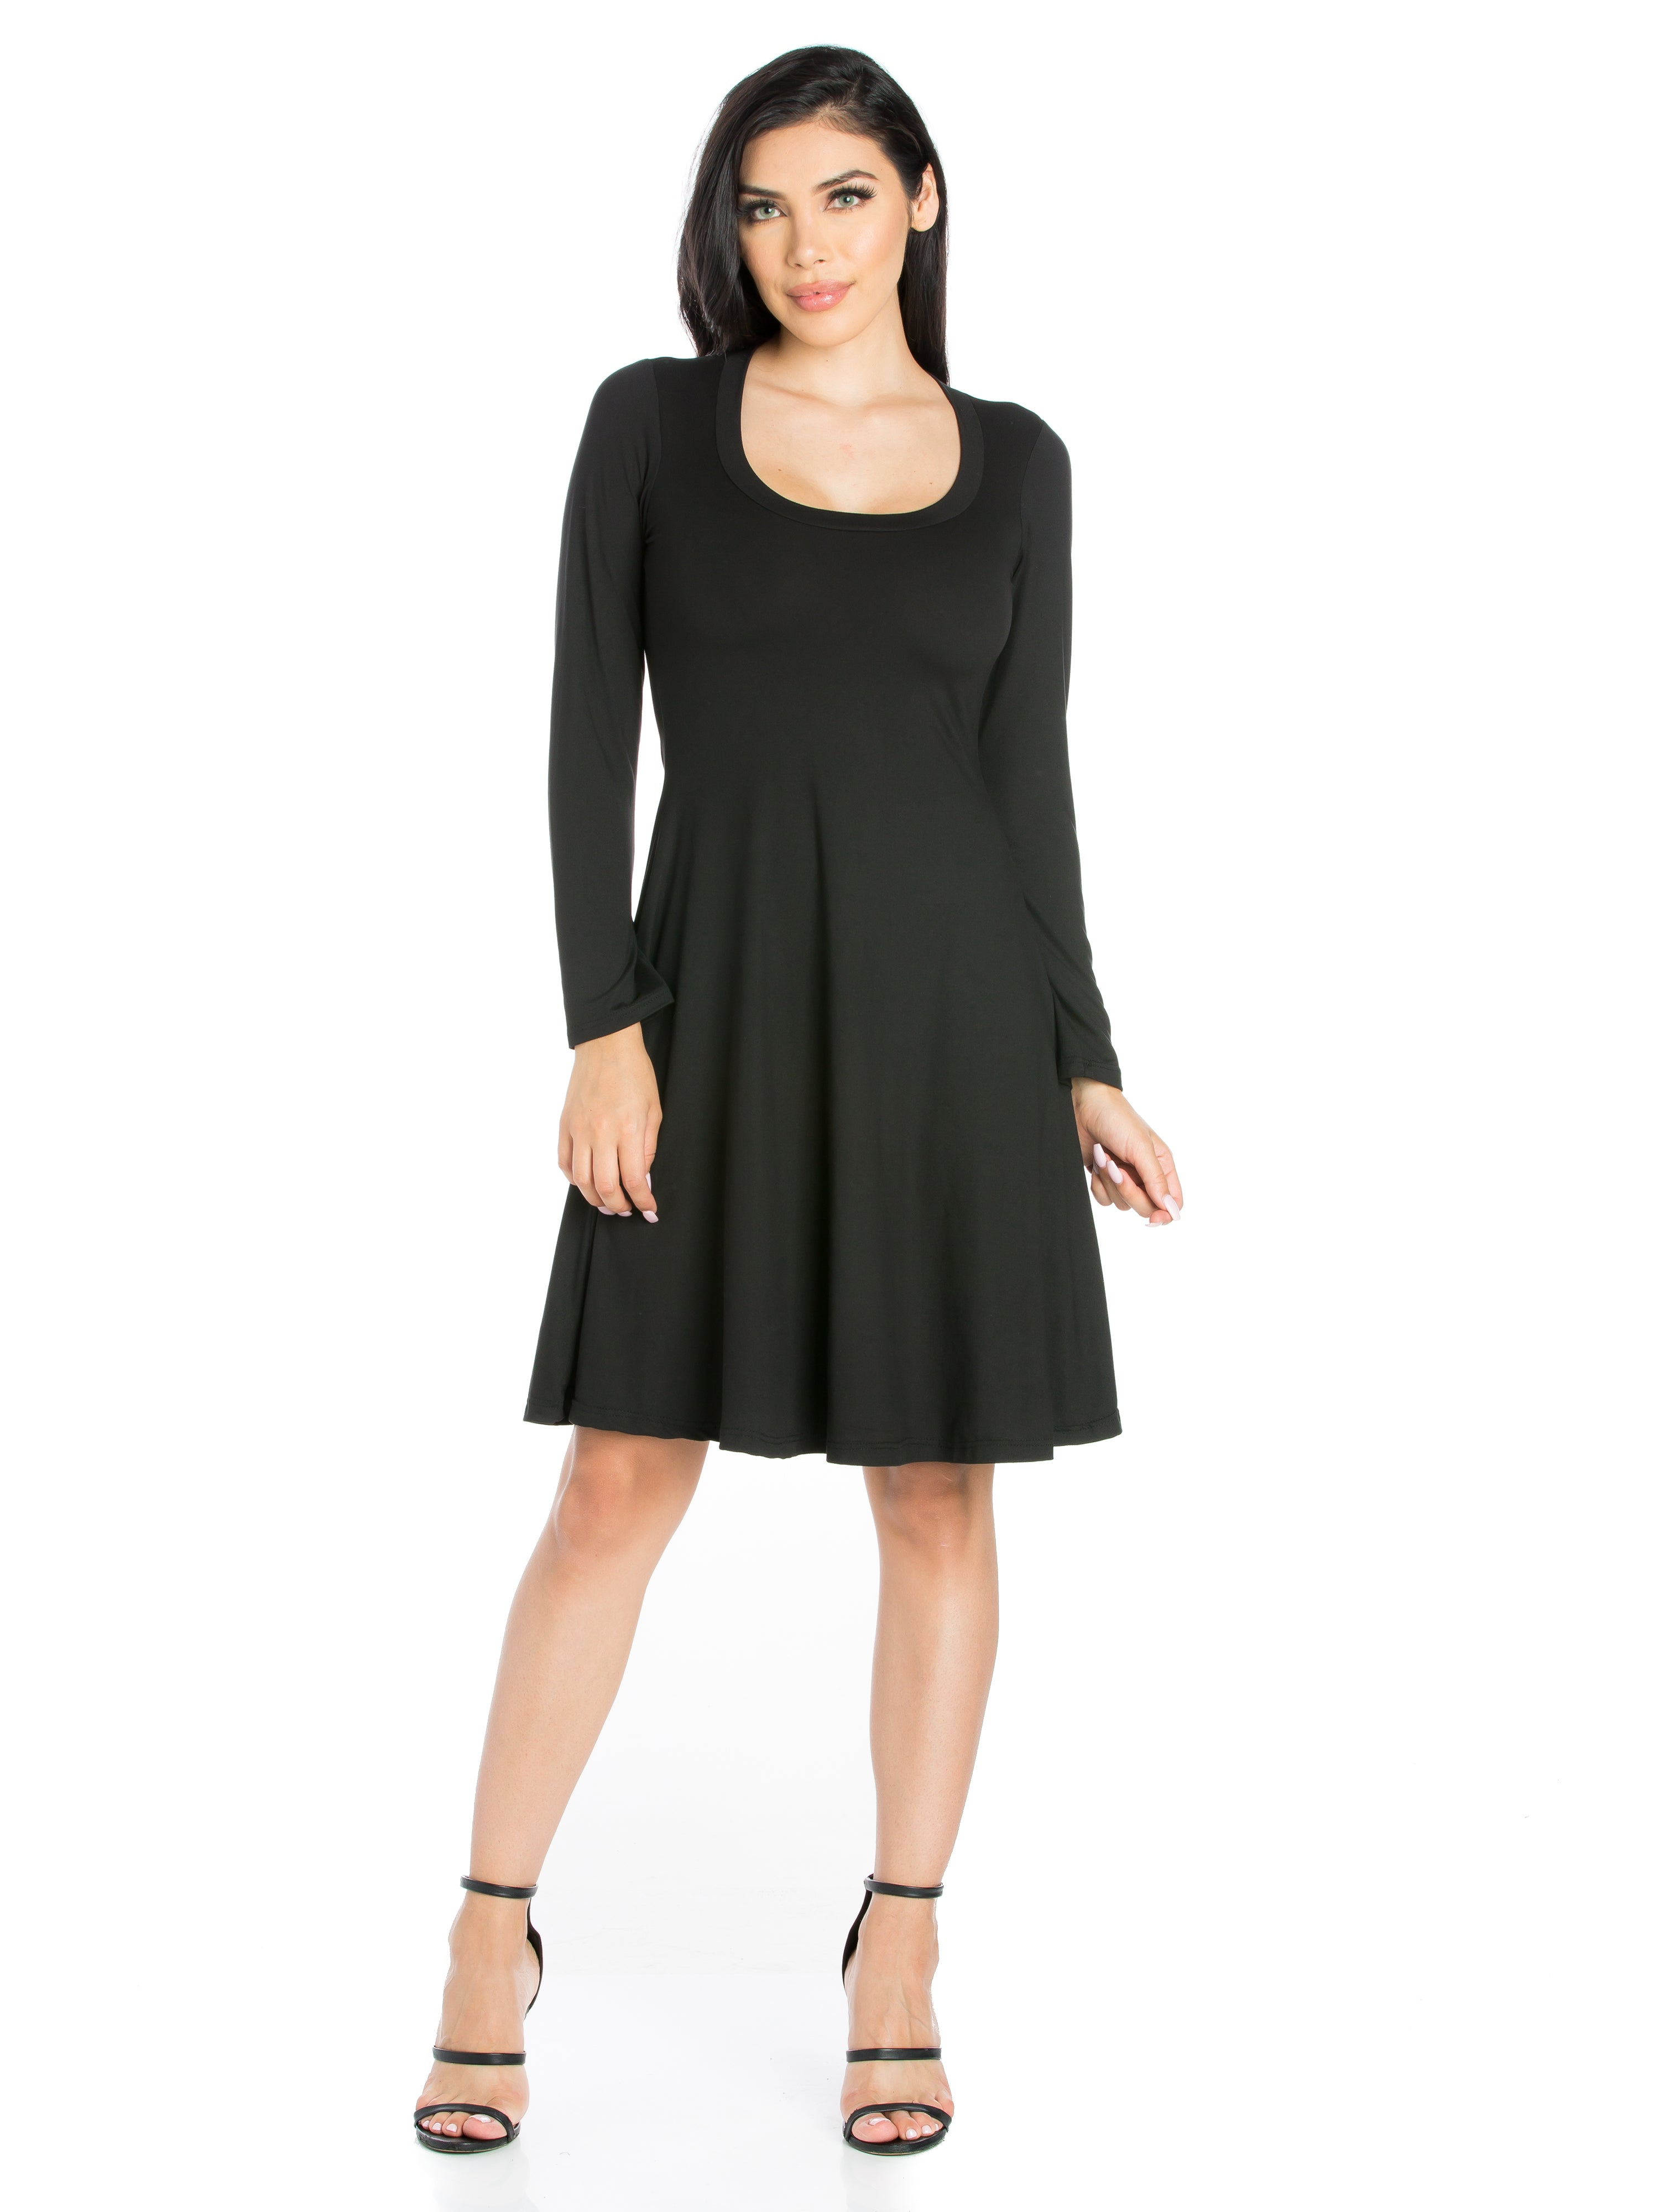 24seven Comfort Apparel Classic Long Sleeve Flared Mini Dress-Dresses-24Seven Comfort Apparel-BLACK-S-24/7 Comfort Apparel